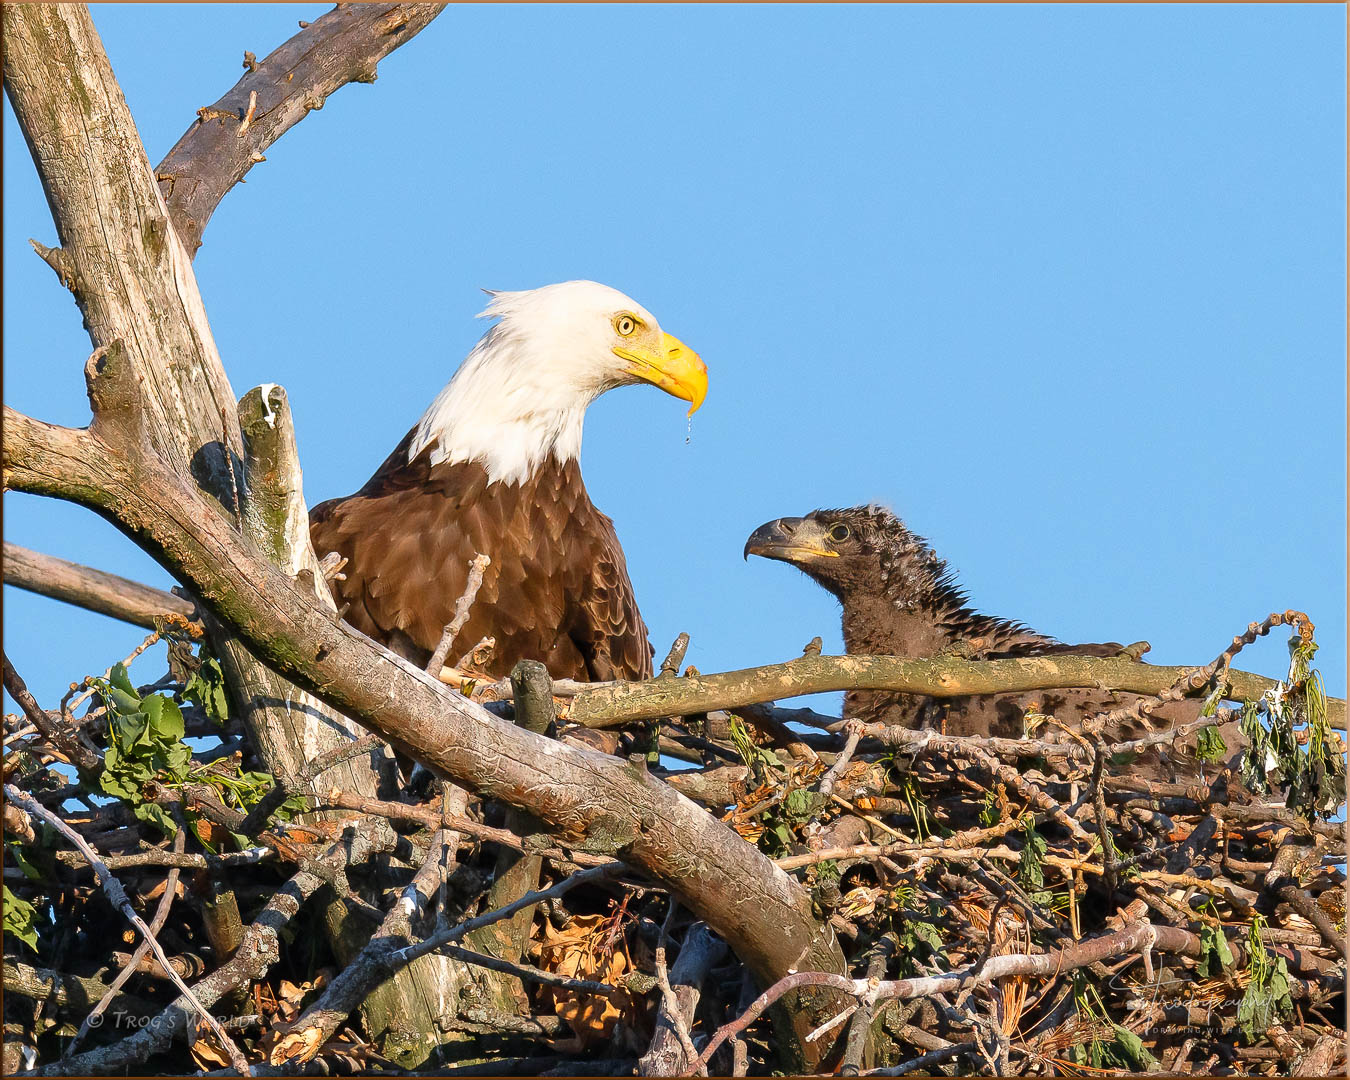 Mama Eagle and her eaglet